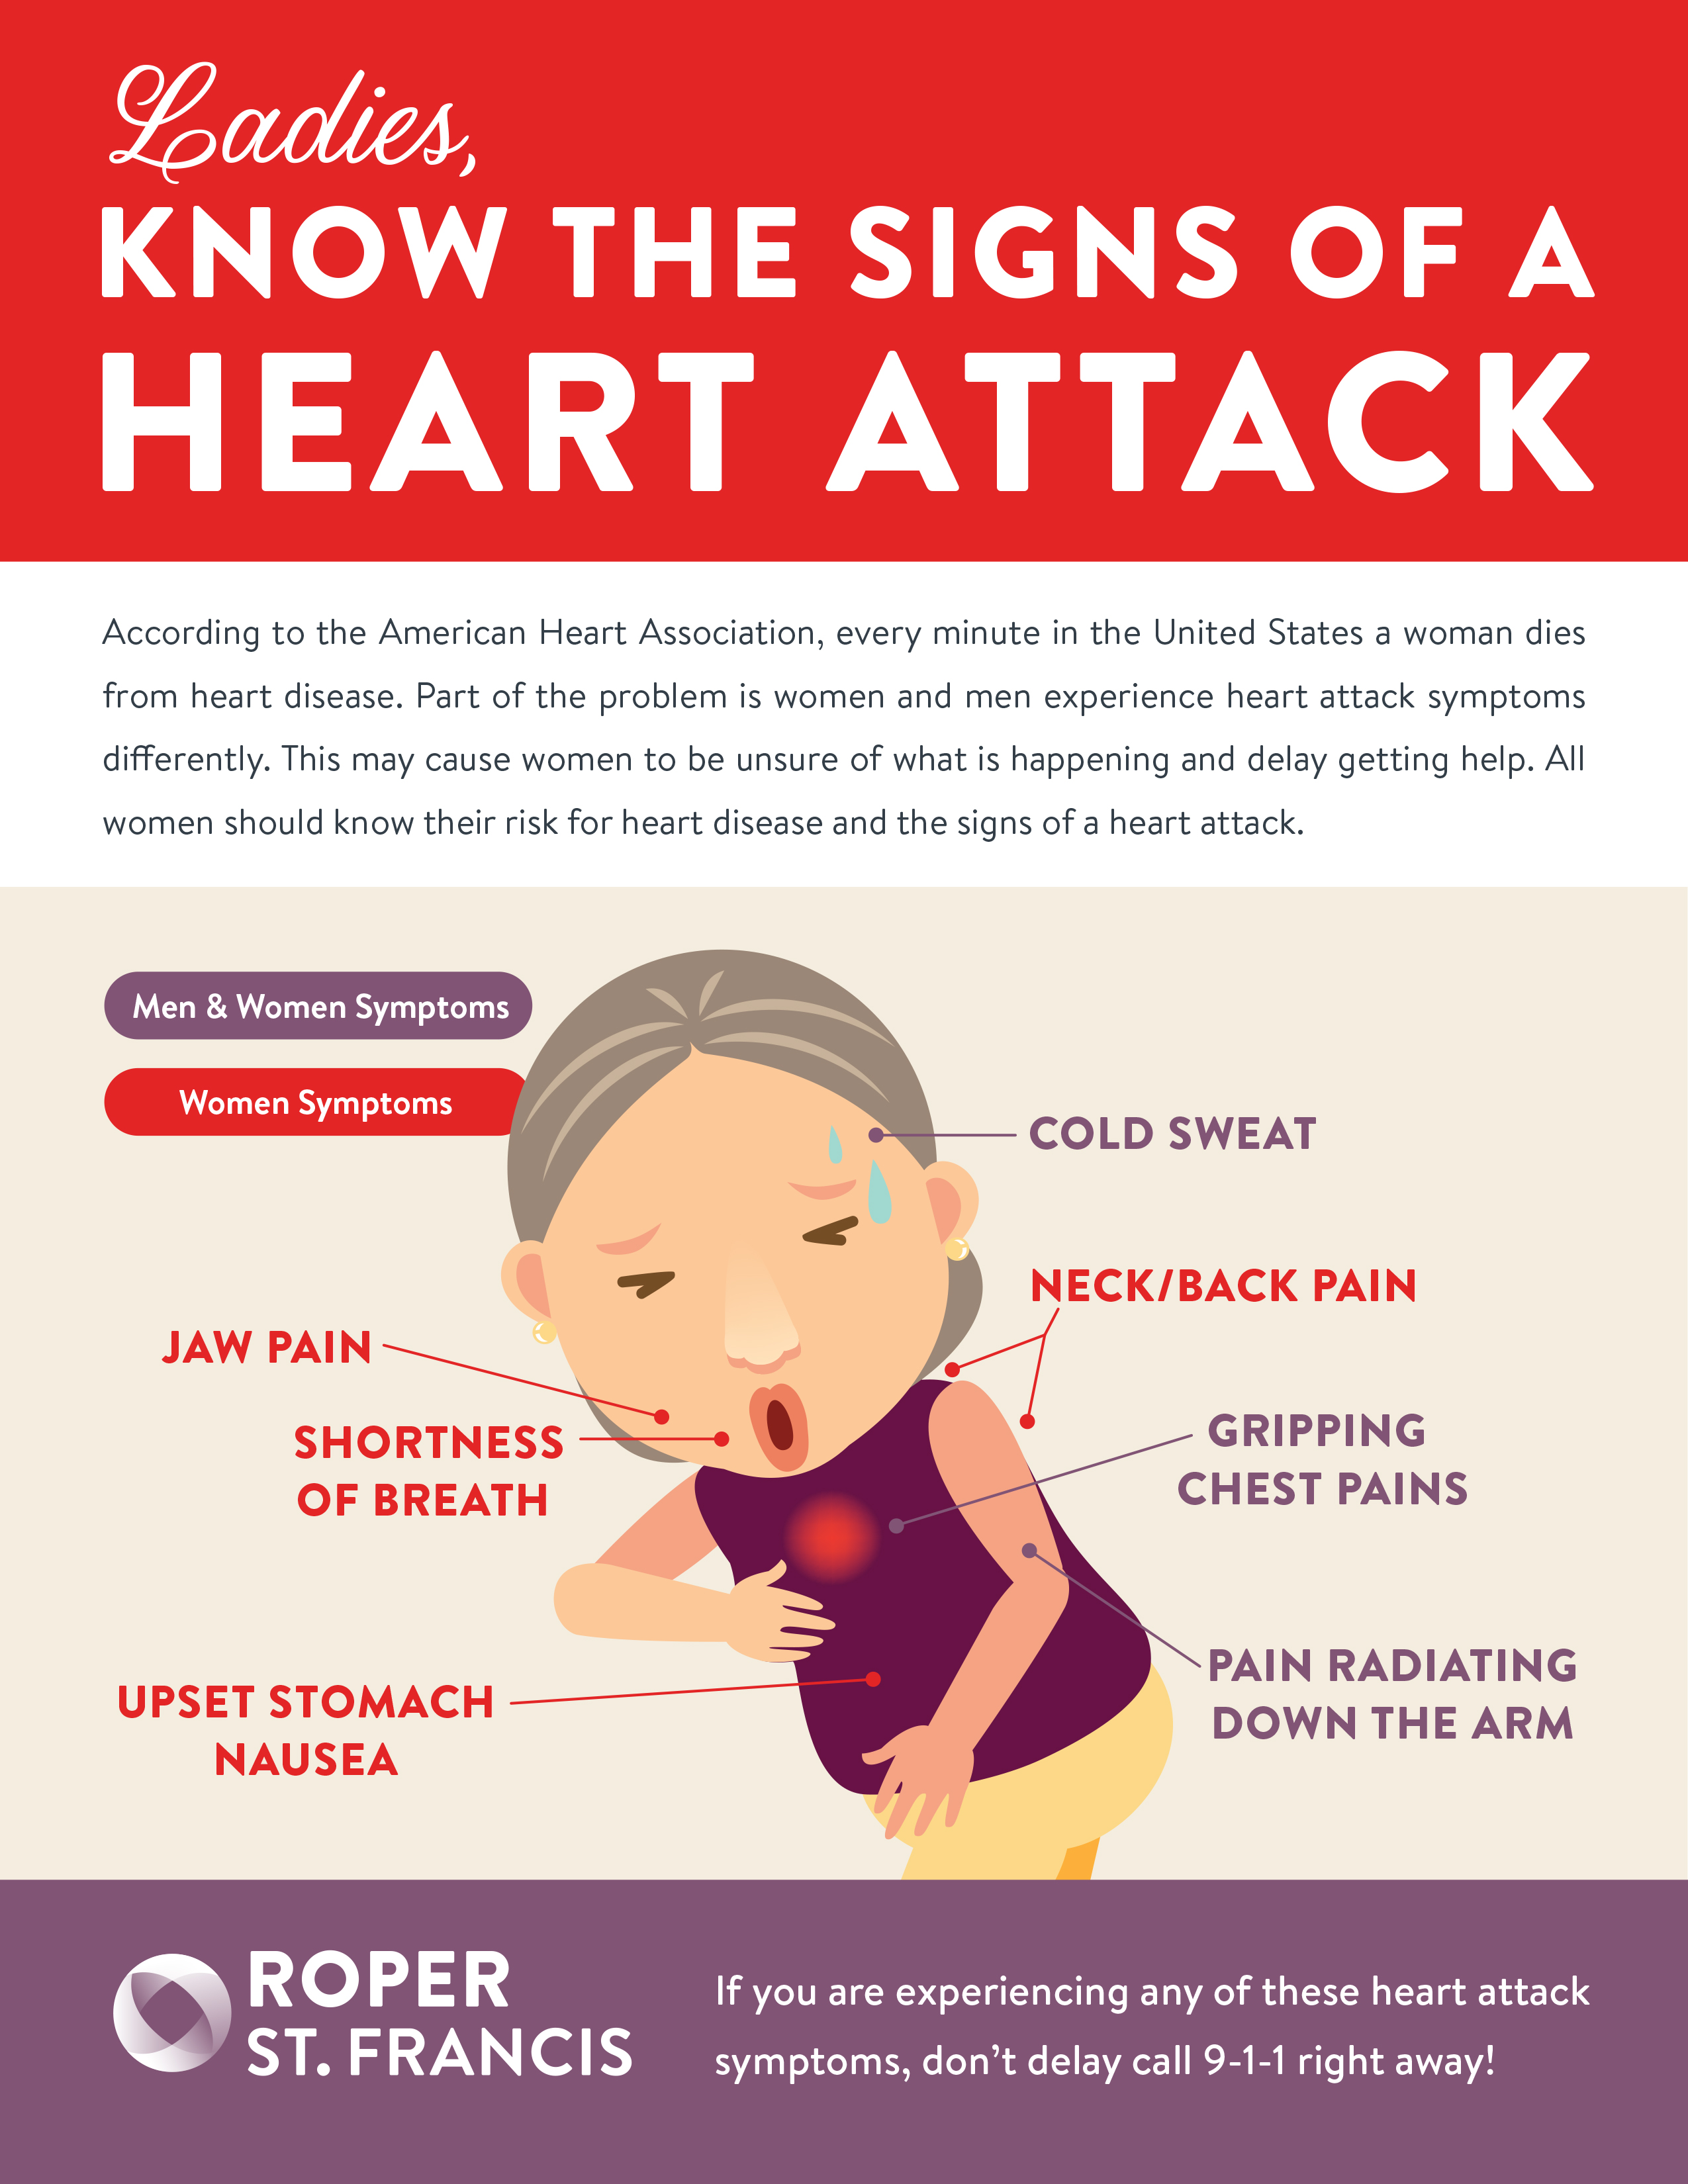 Signs of a Heart Attack in Women